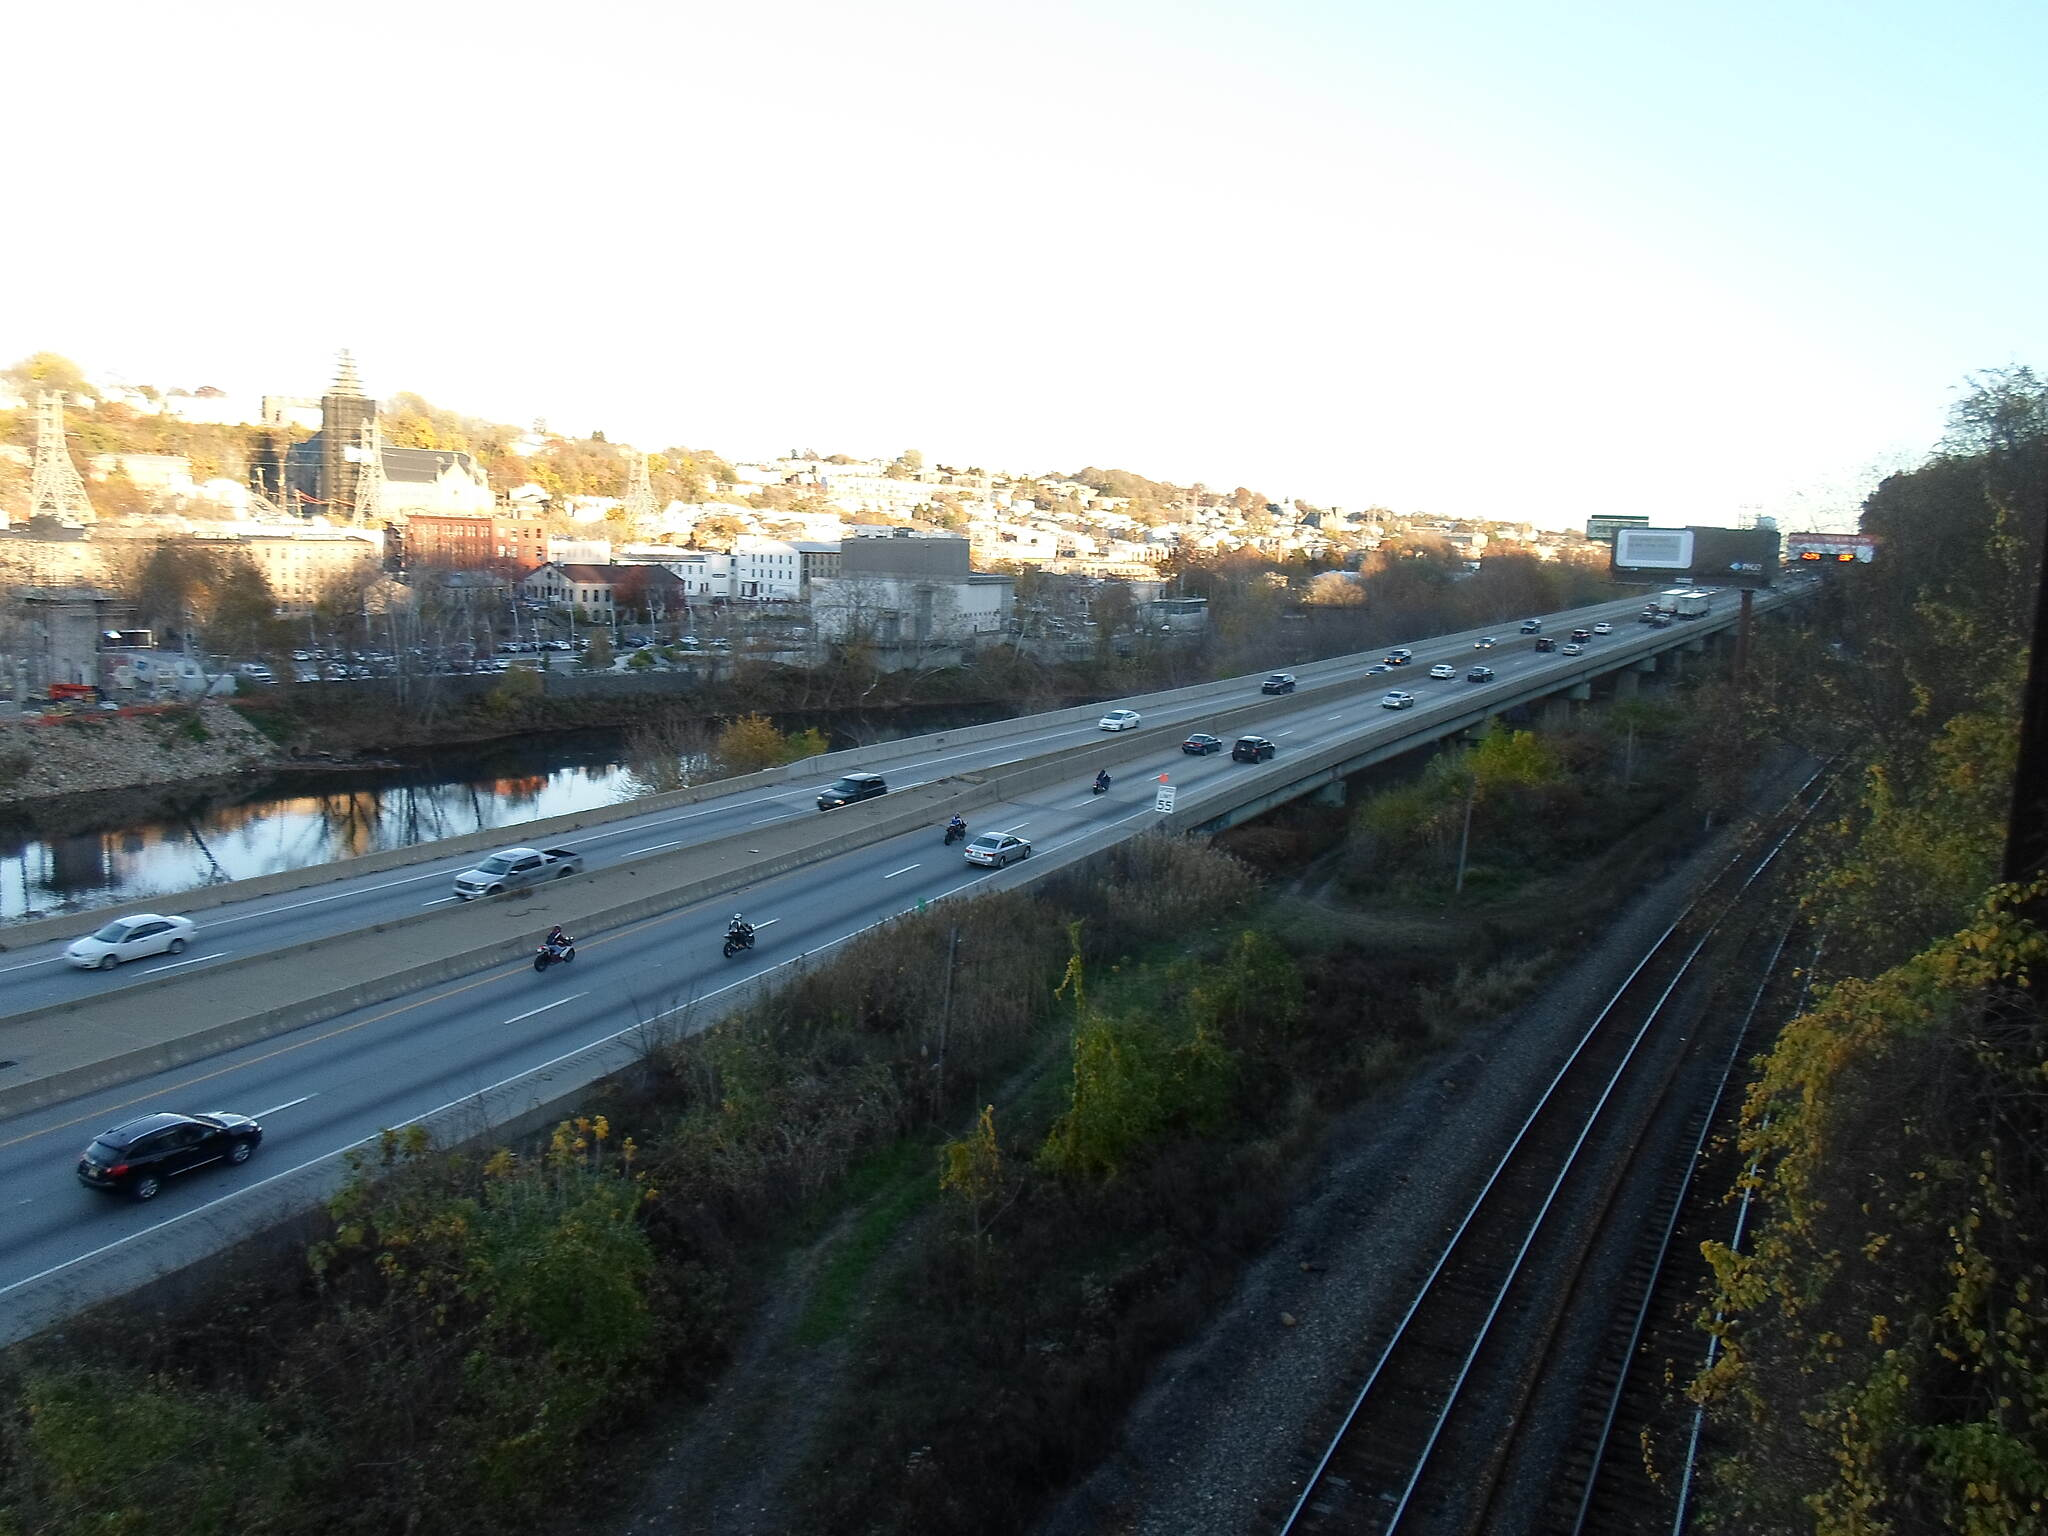 Cynwyd Heritage Trail Cynwyd Heritage Trail Schuylkill River, Schuylkill Expressway and RR lines, all side by side and visible from the trail neat the Manayunk Trestle. Taken Nov. 2015.